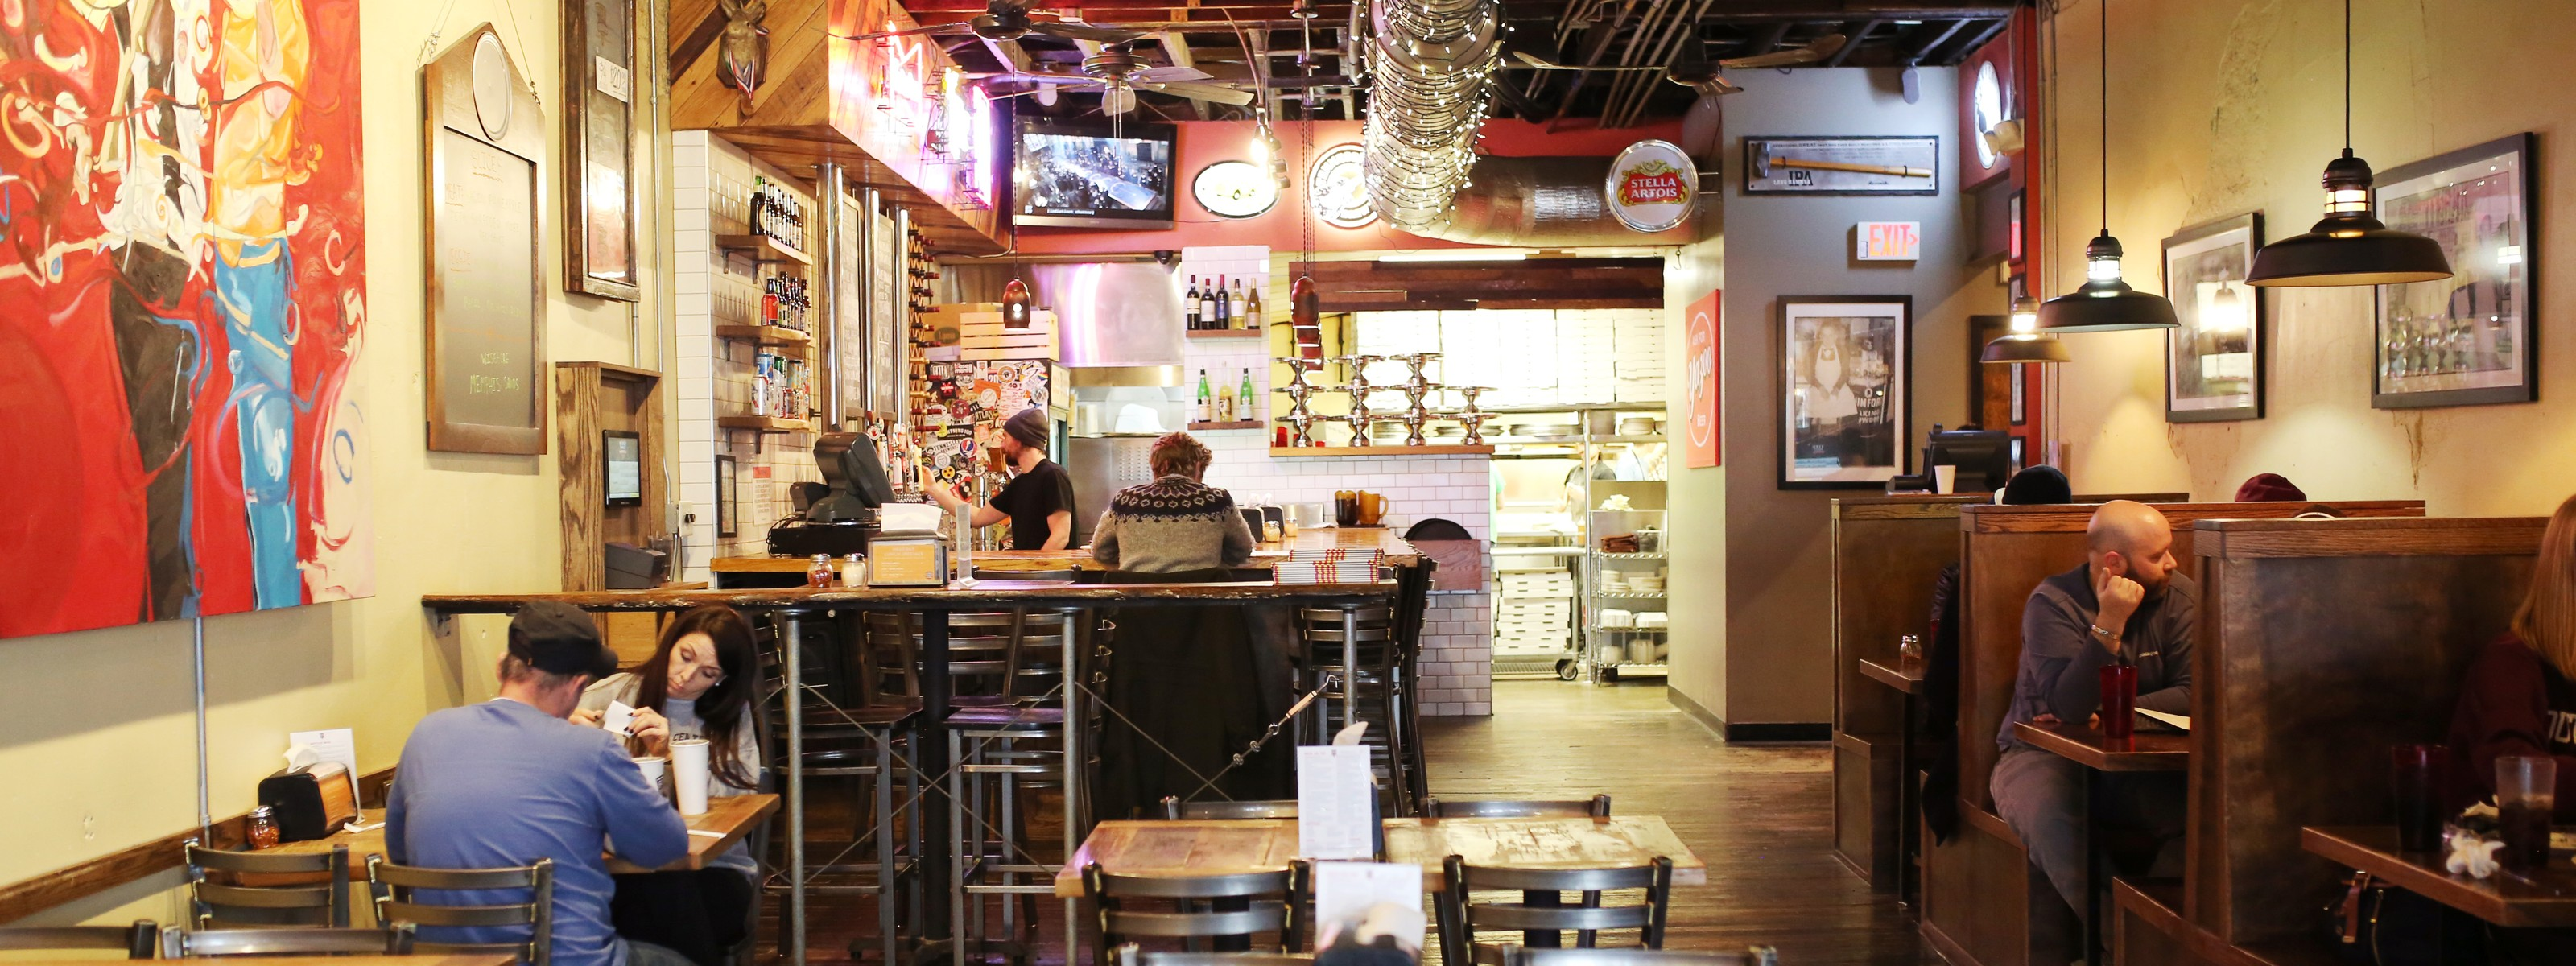 12 Nashville Restaurants Where You'll Want To Become A Regular - Nashville - The Infatuation